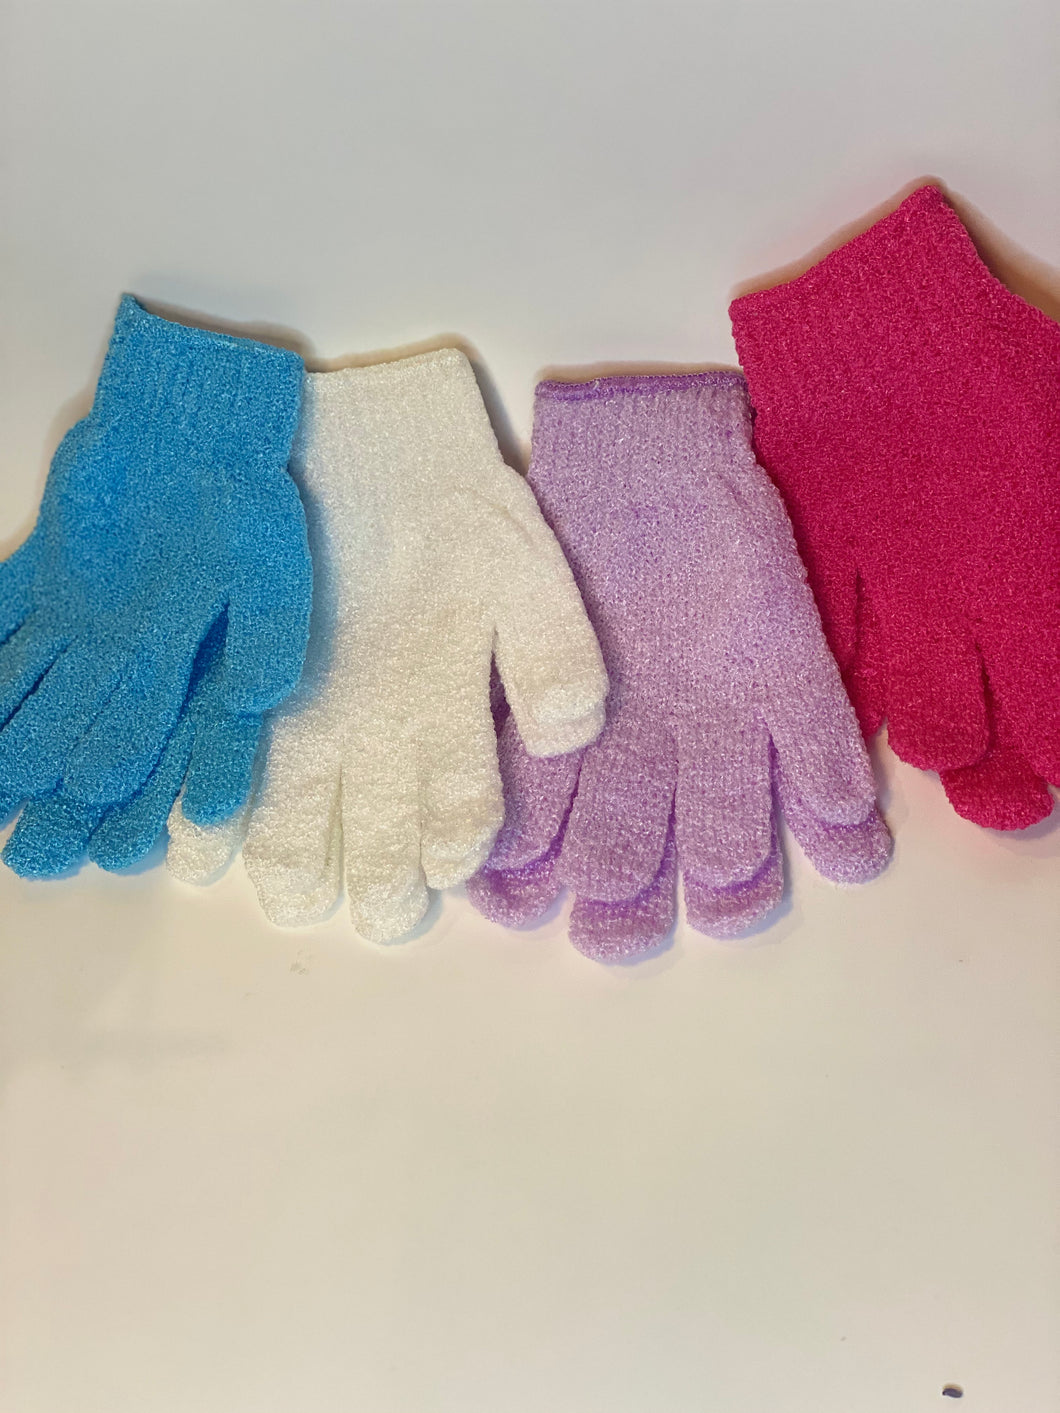 Matching Exfoliating Gloves